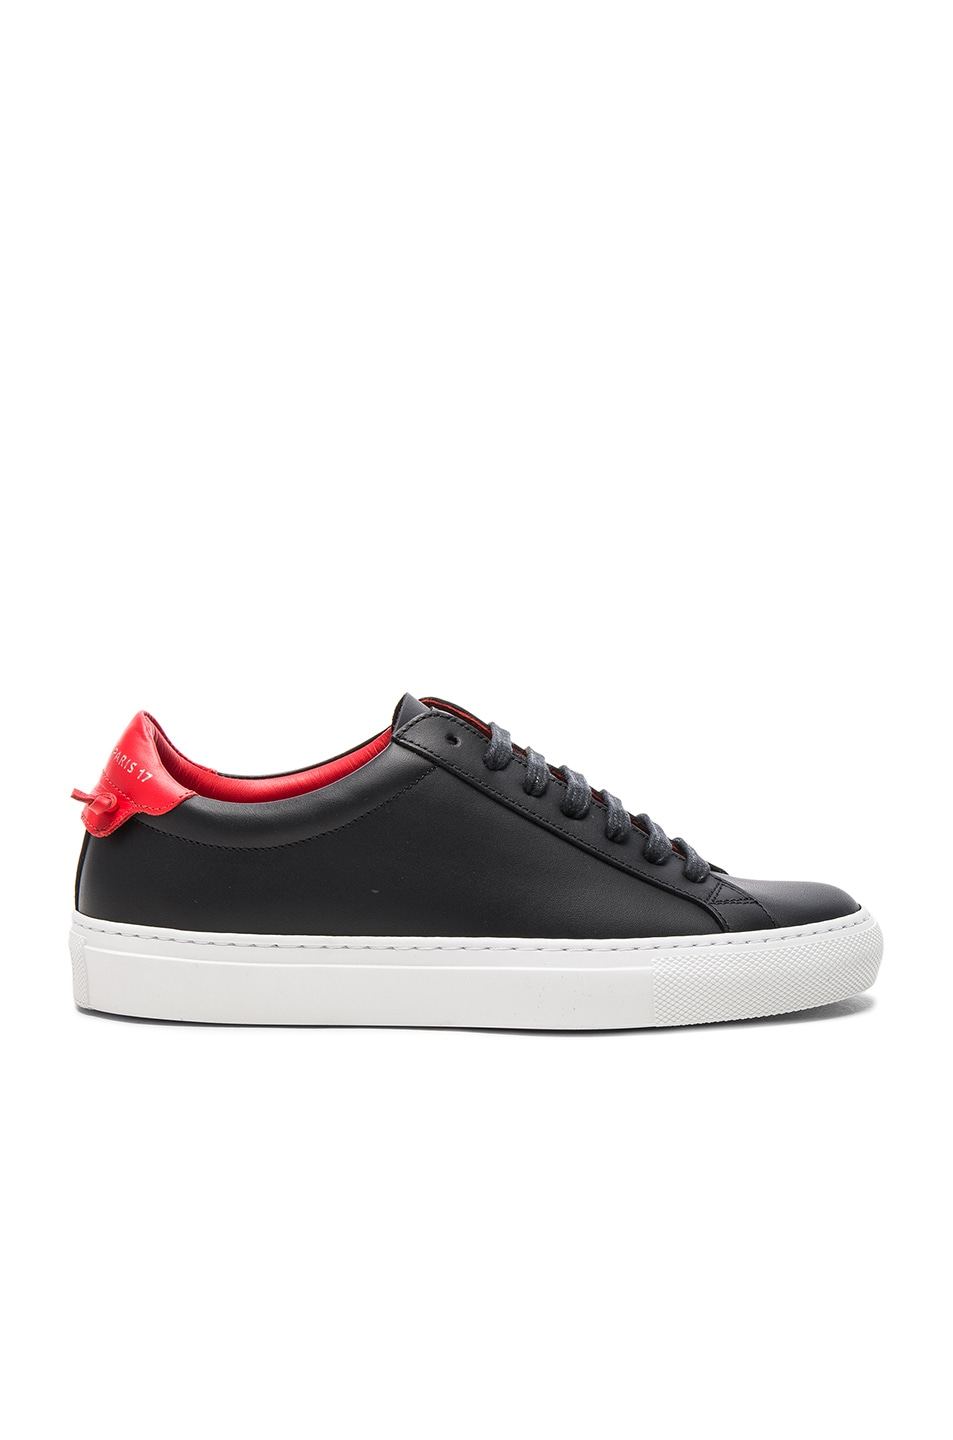 givenchy shoes red